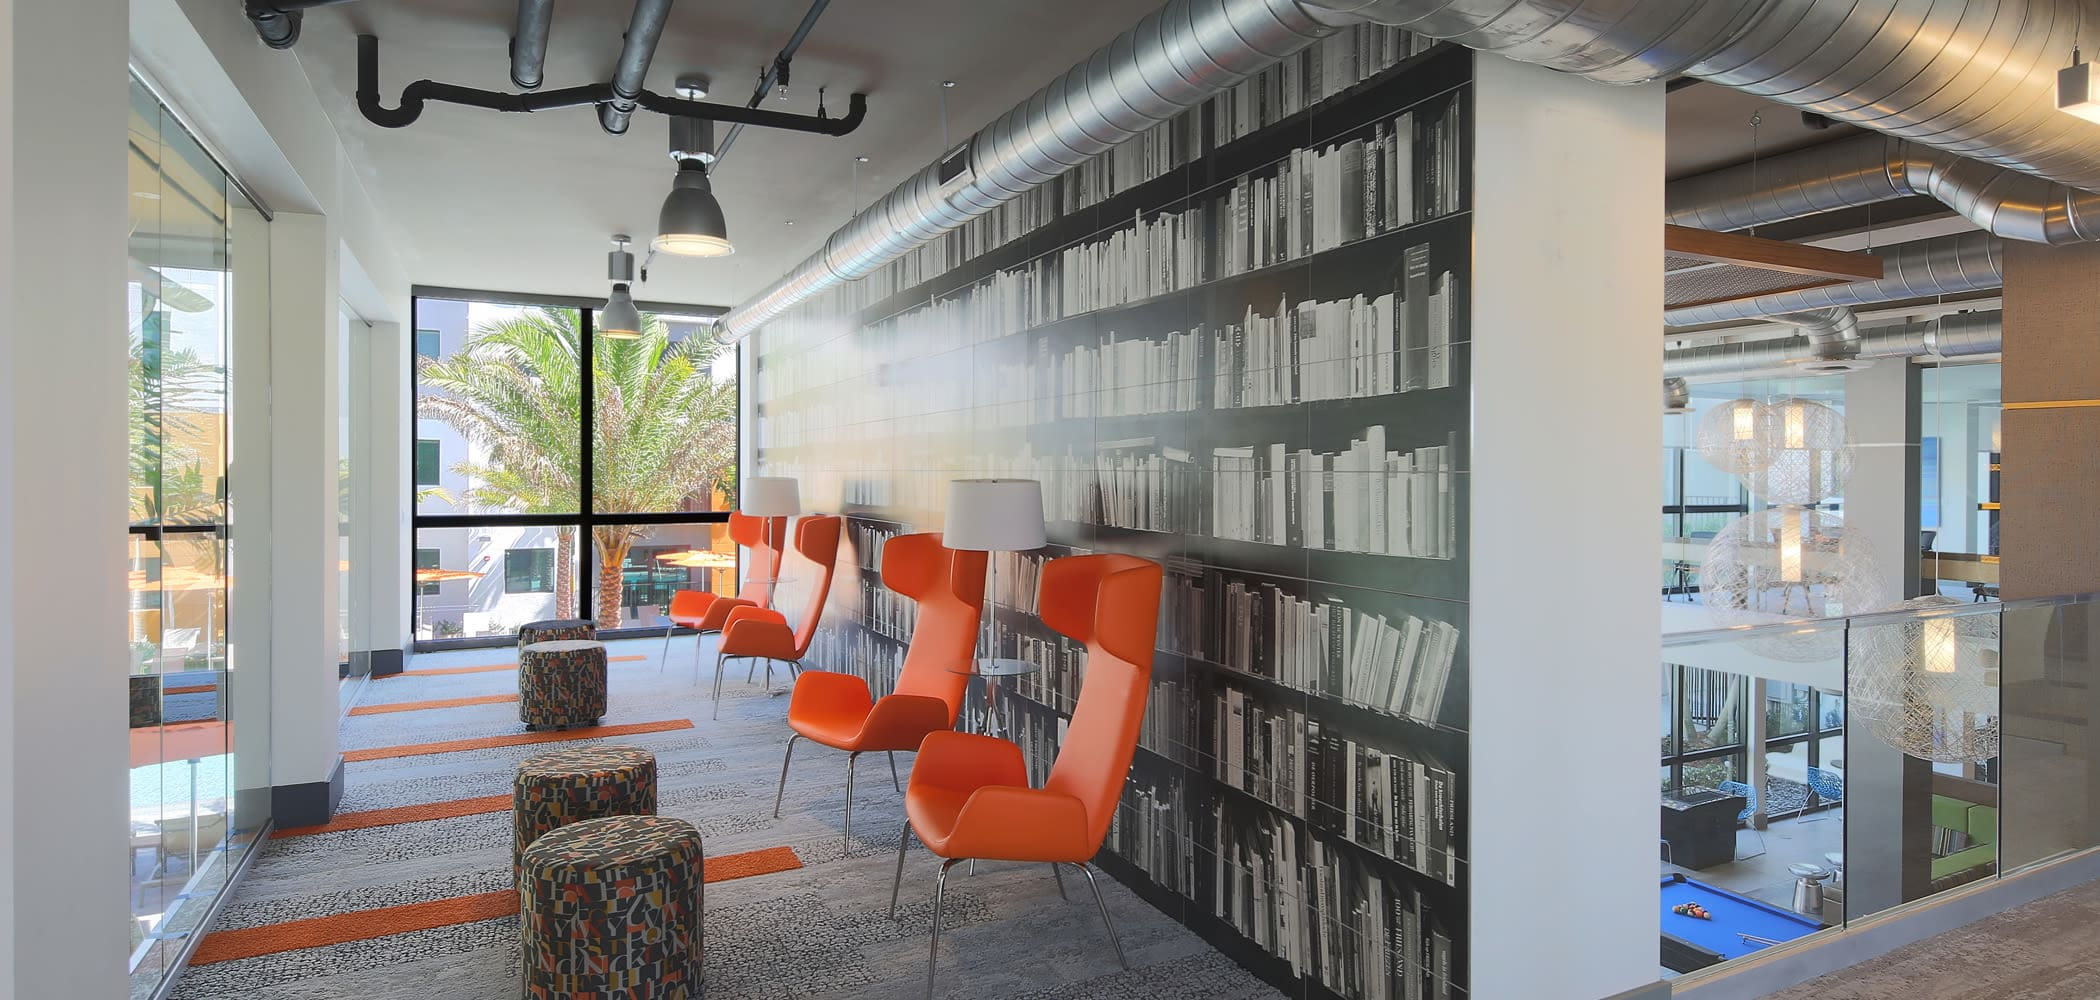 Study and lounge area at University Park in Boca Raton, Florida